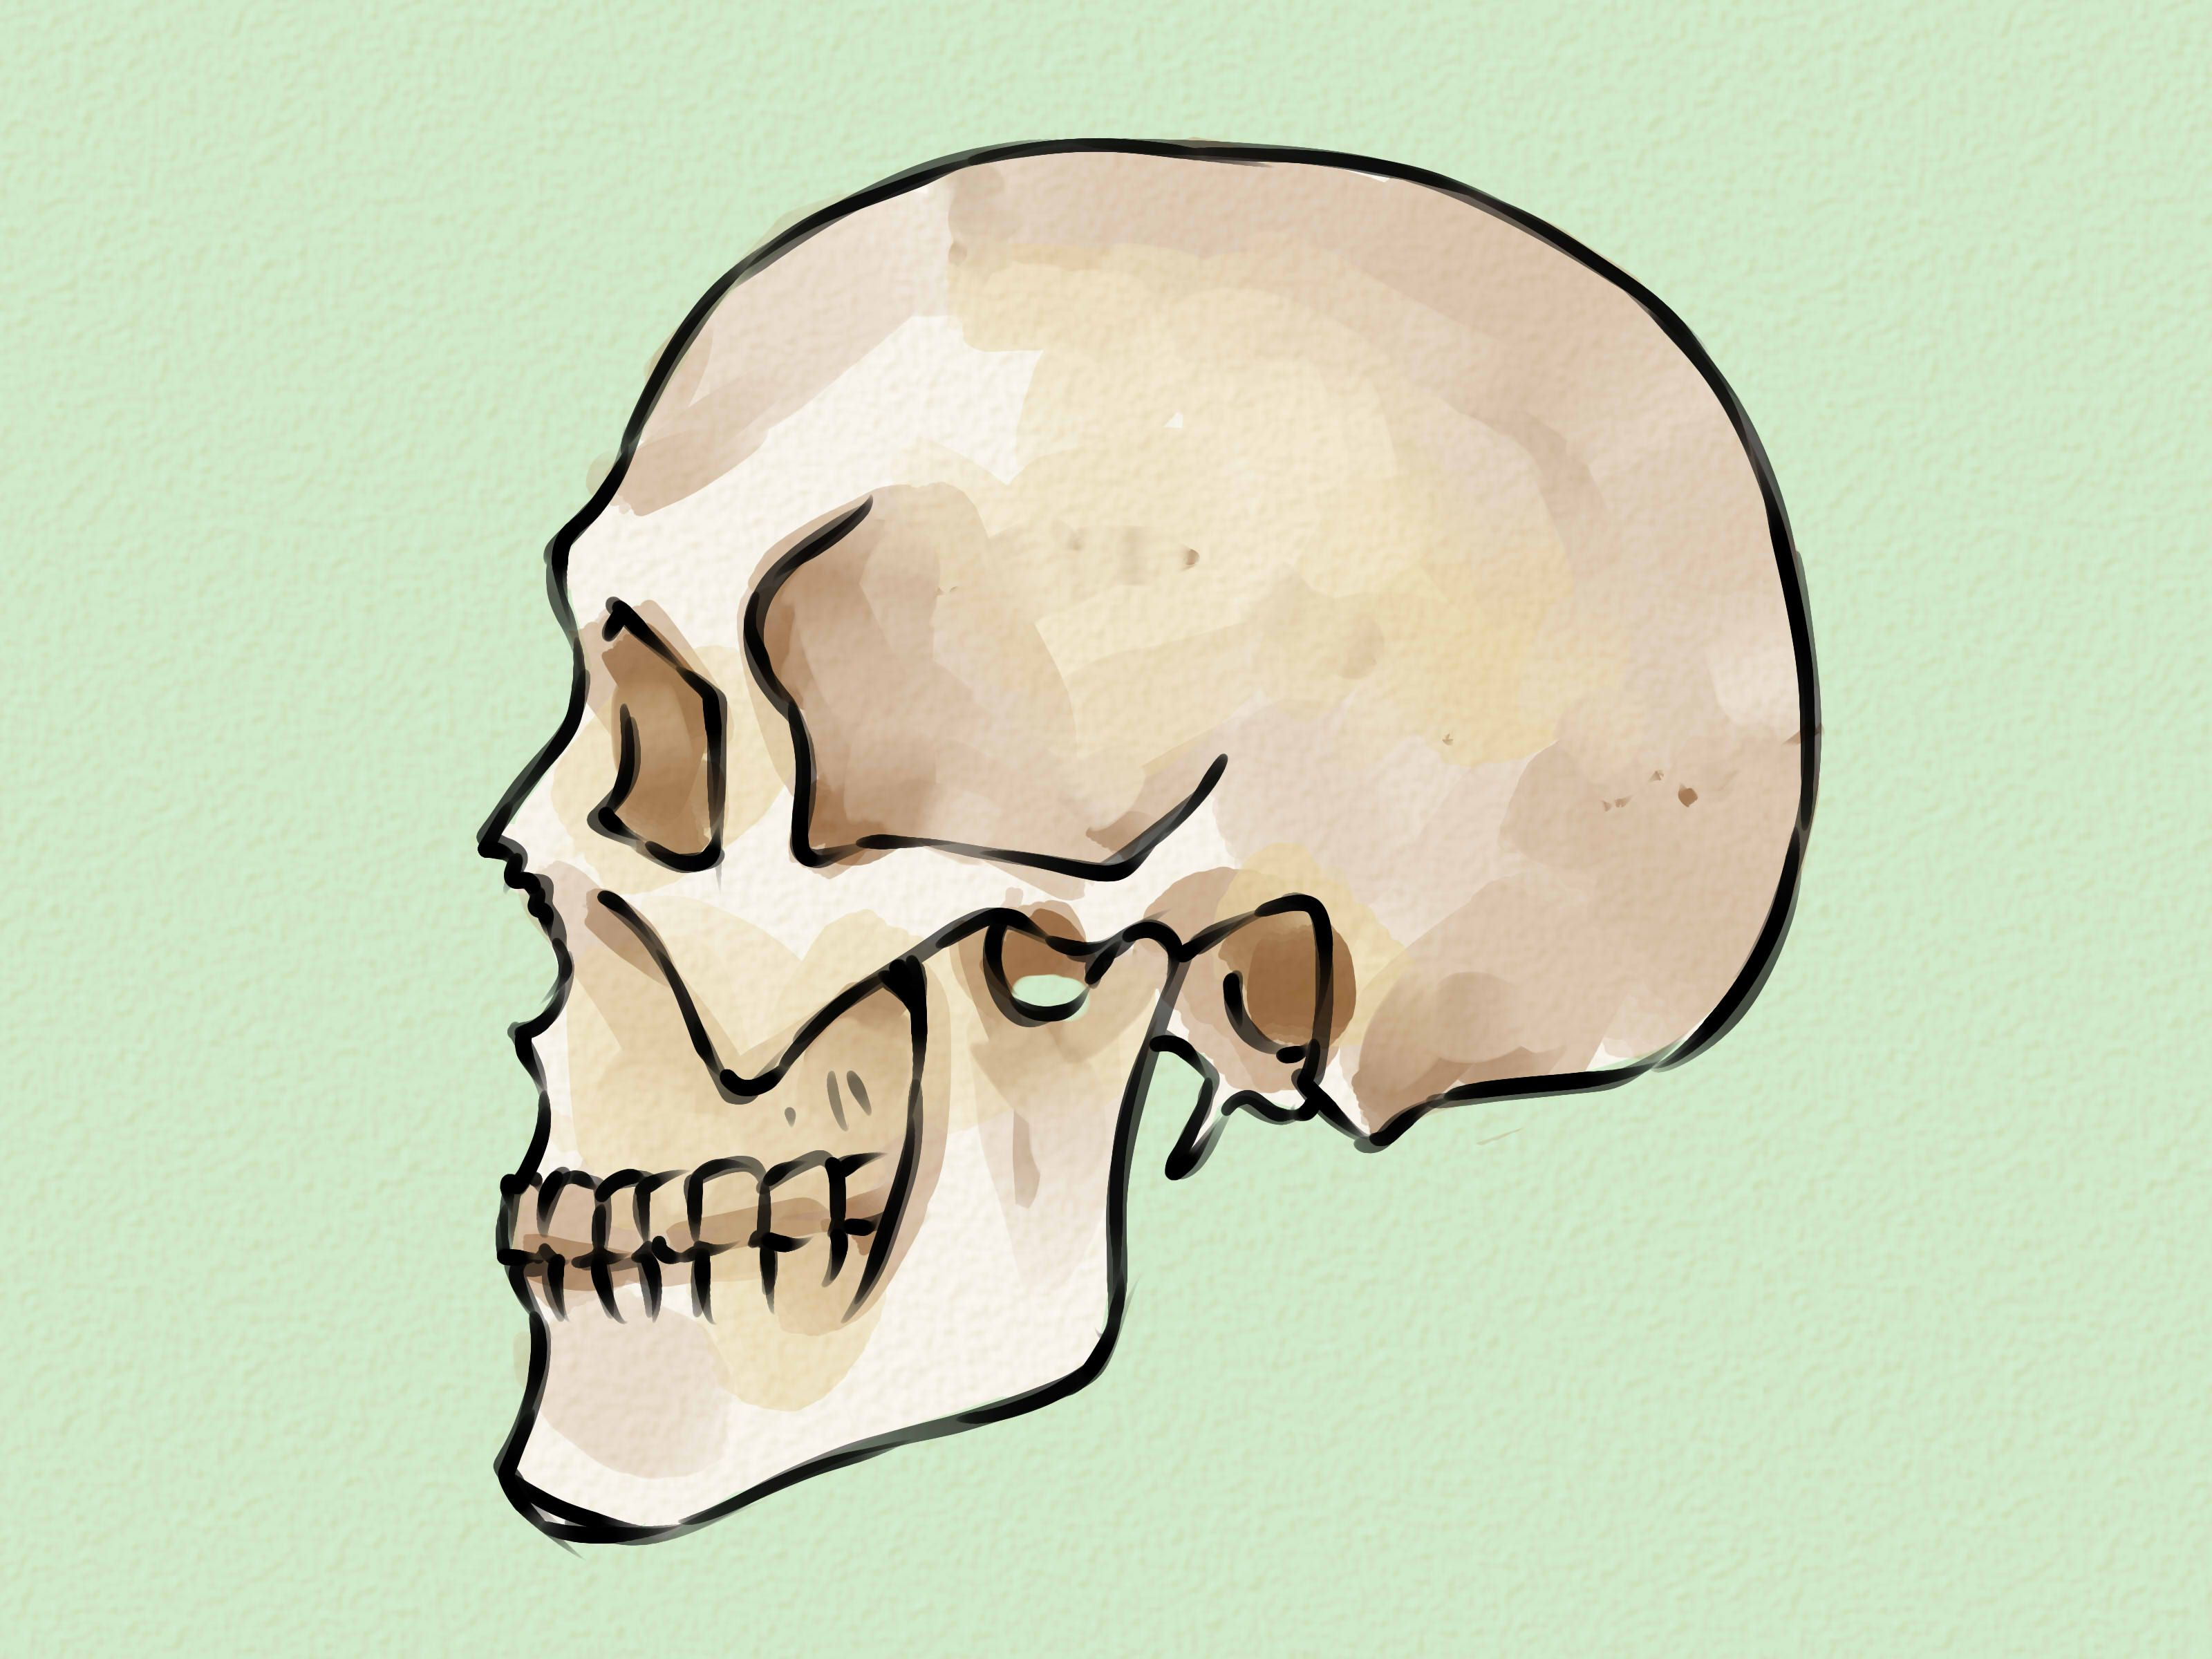 3200x2400 Draw A Skull Painting Inspiration, Sketches And Drawings